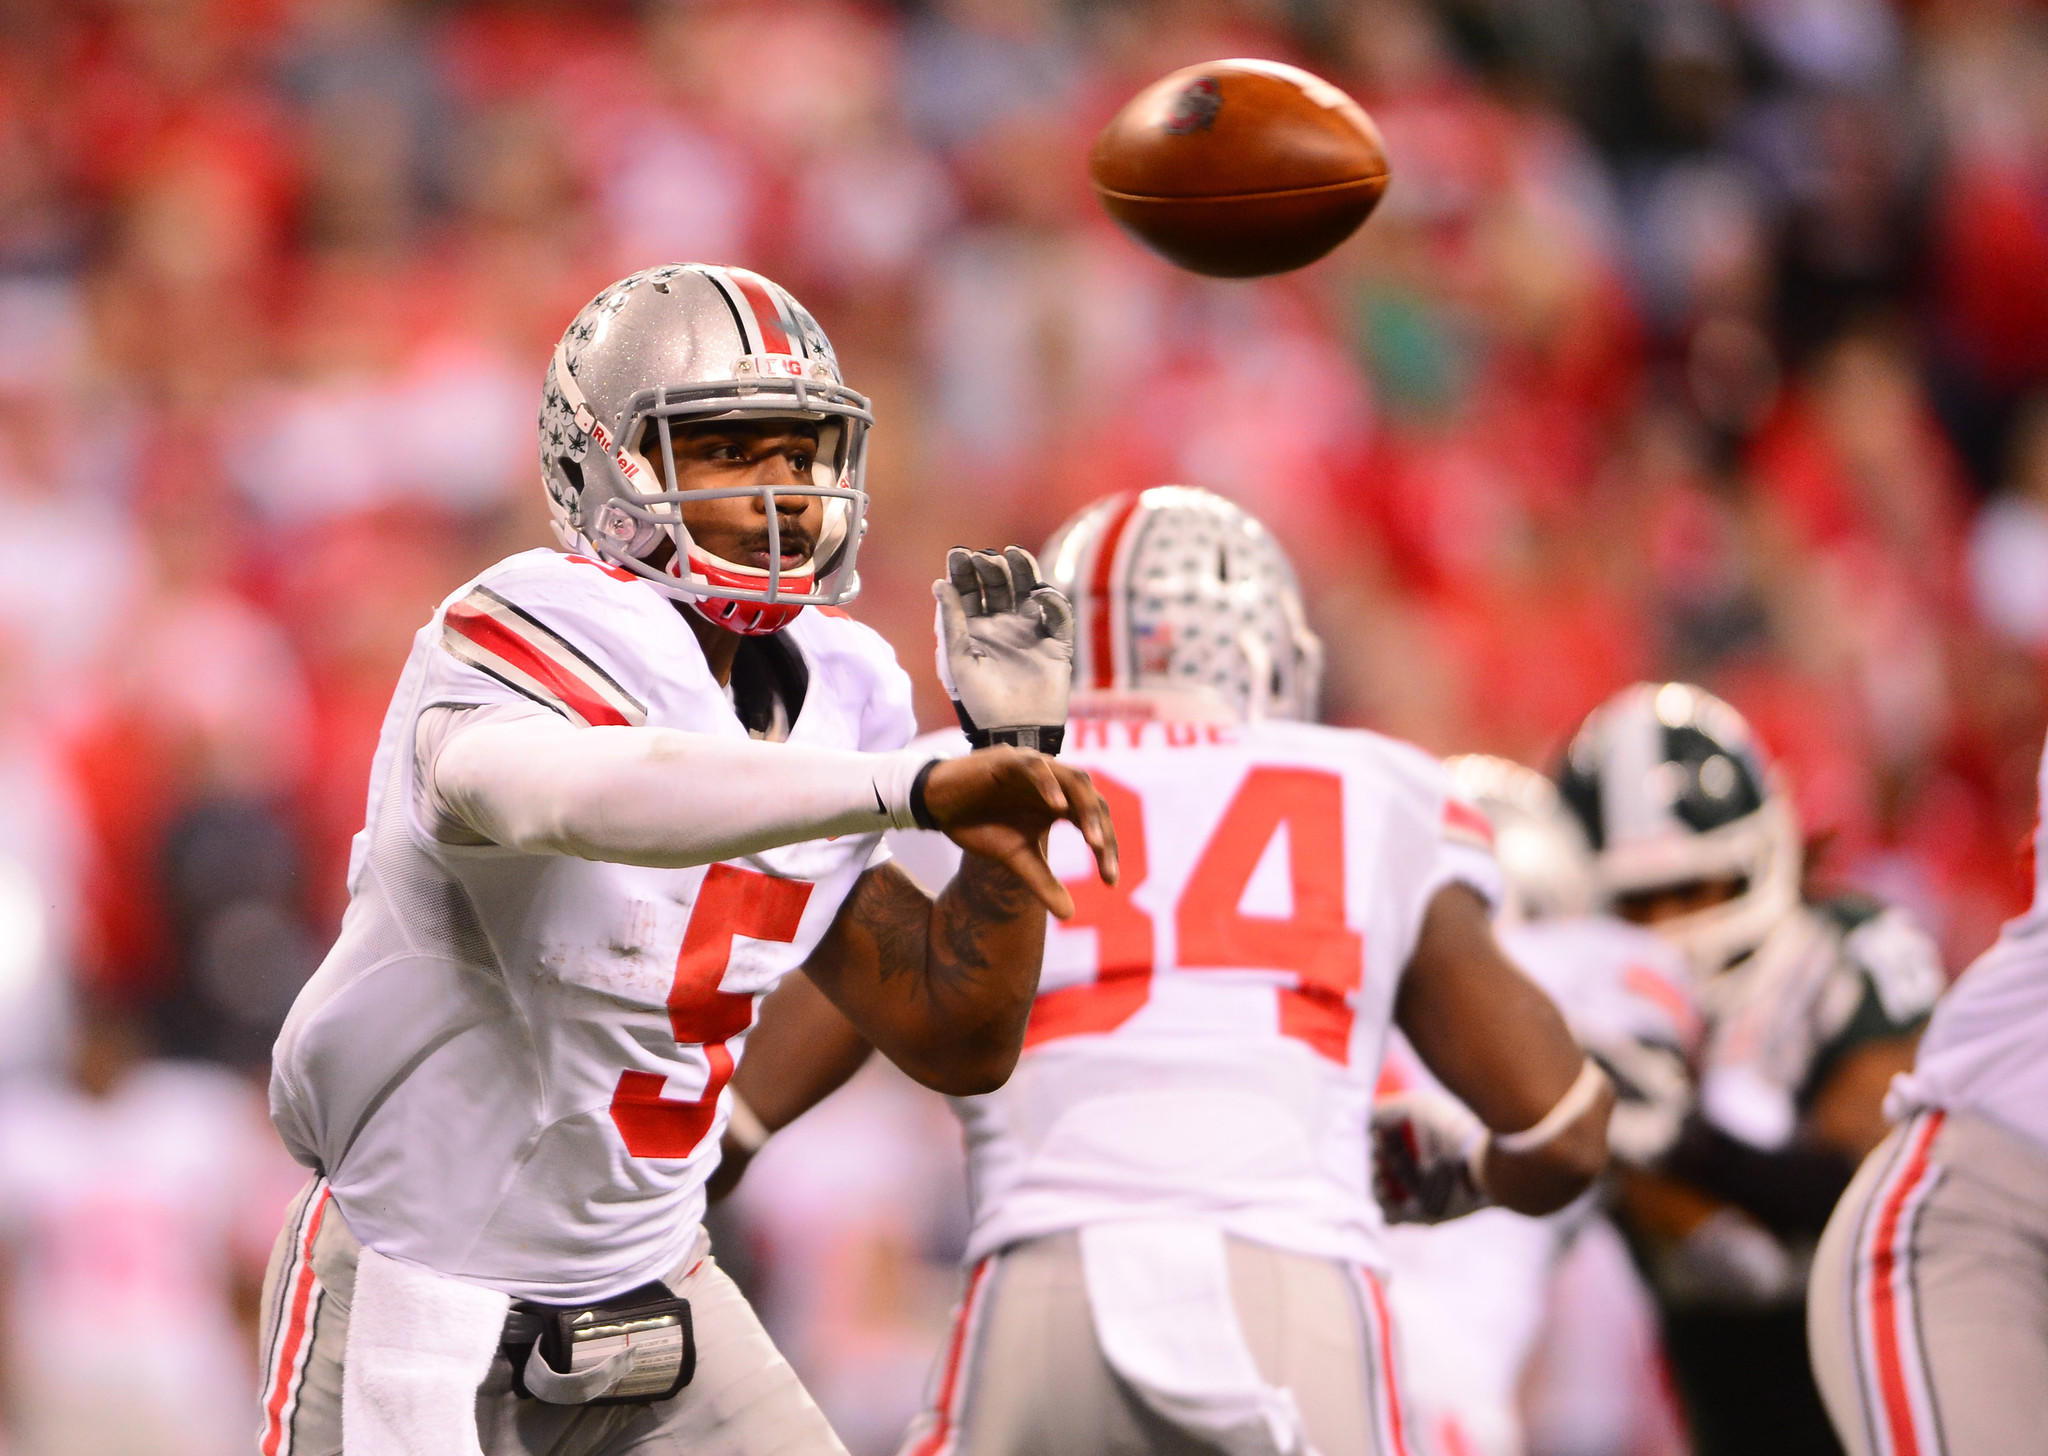 Ohio State quarterback Braxton Miller throws a pass during the third quarter of the 2013 Big 10 Championship game.